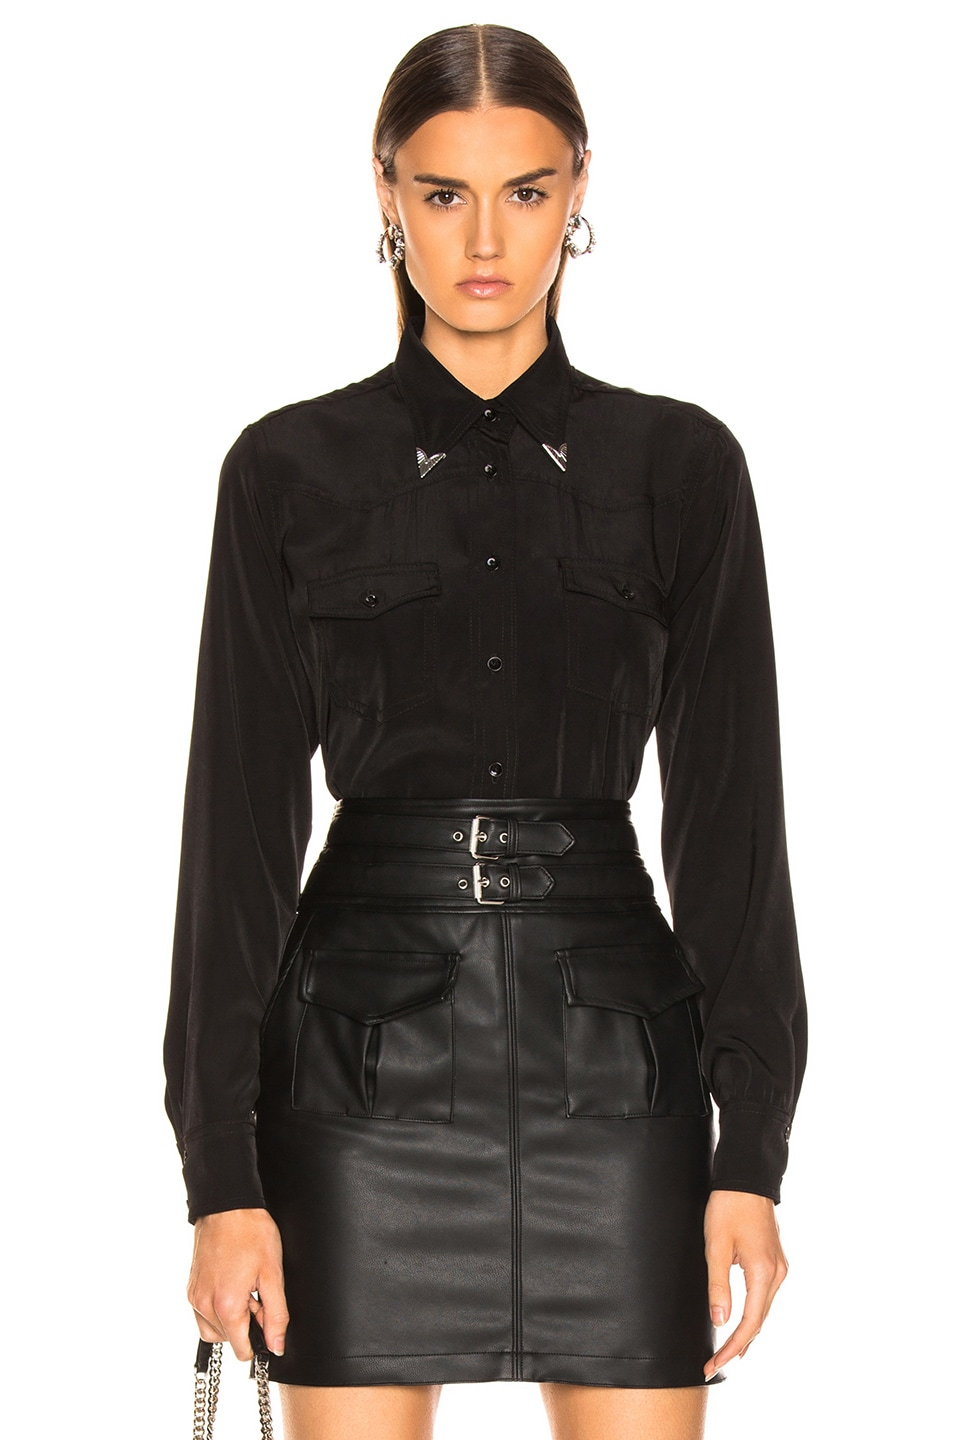 Image 1 of LAUREL & MULHOLLAND Kirkwood Shirt in Black